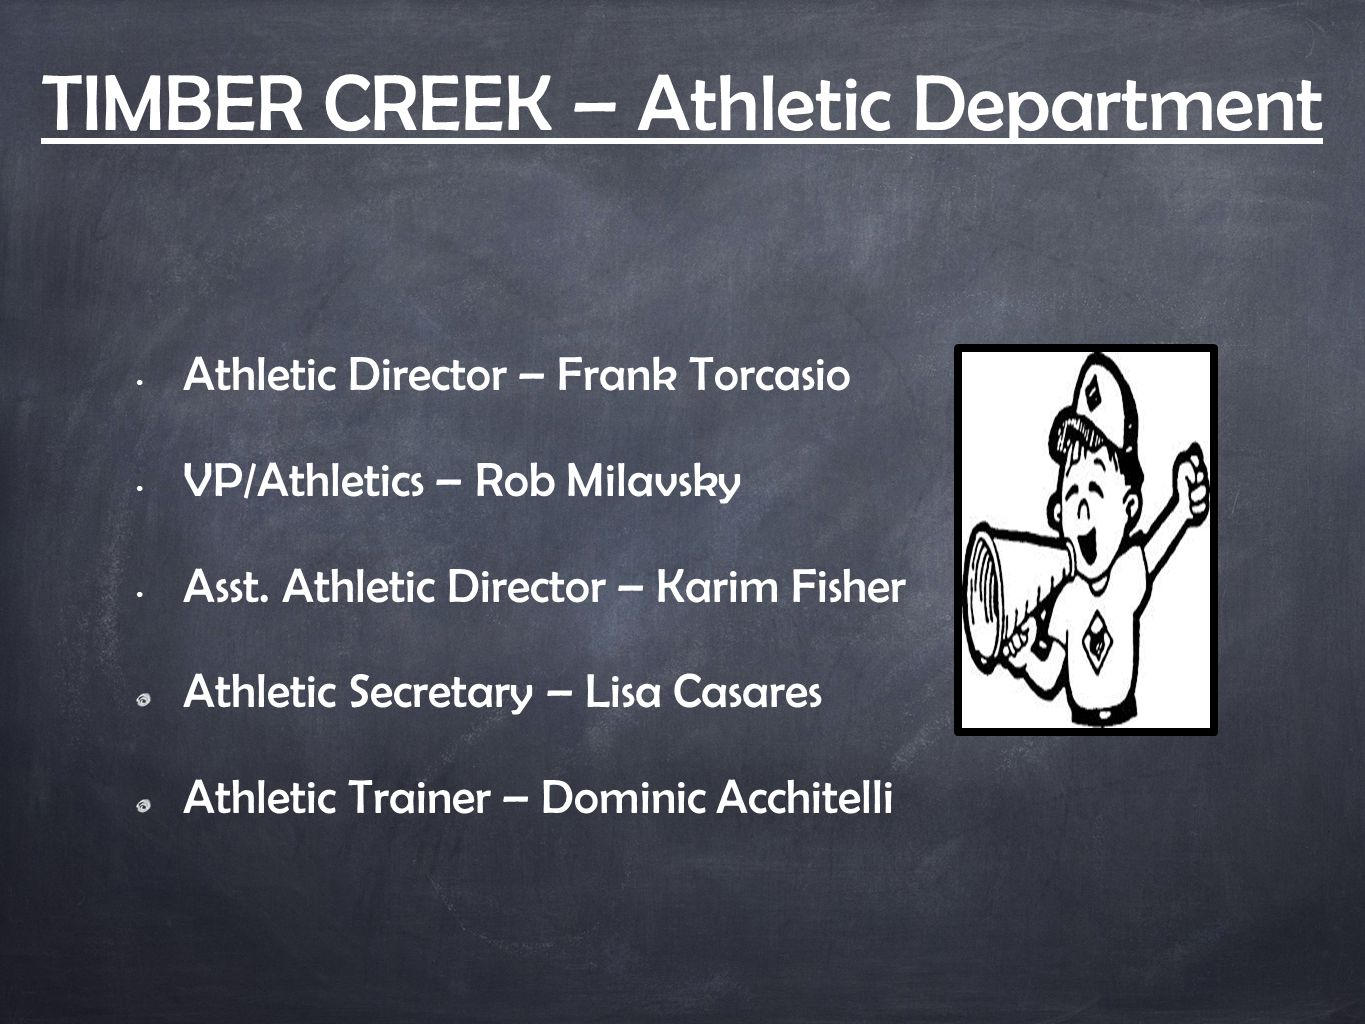 IMPORTANT… No athlete is cleared to participate until our school doctor signs off on the physical.